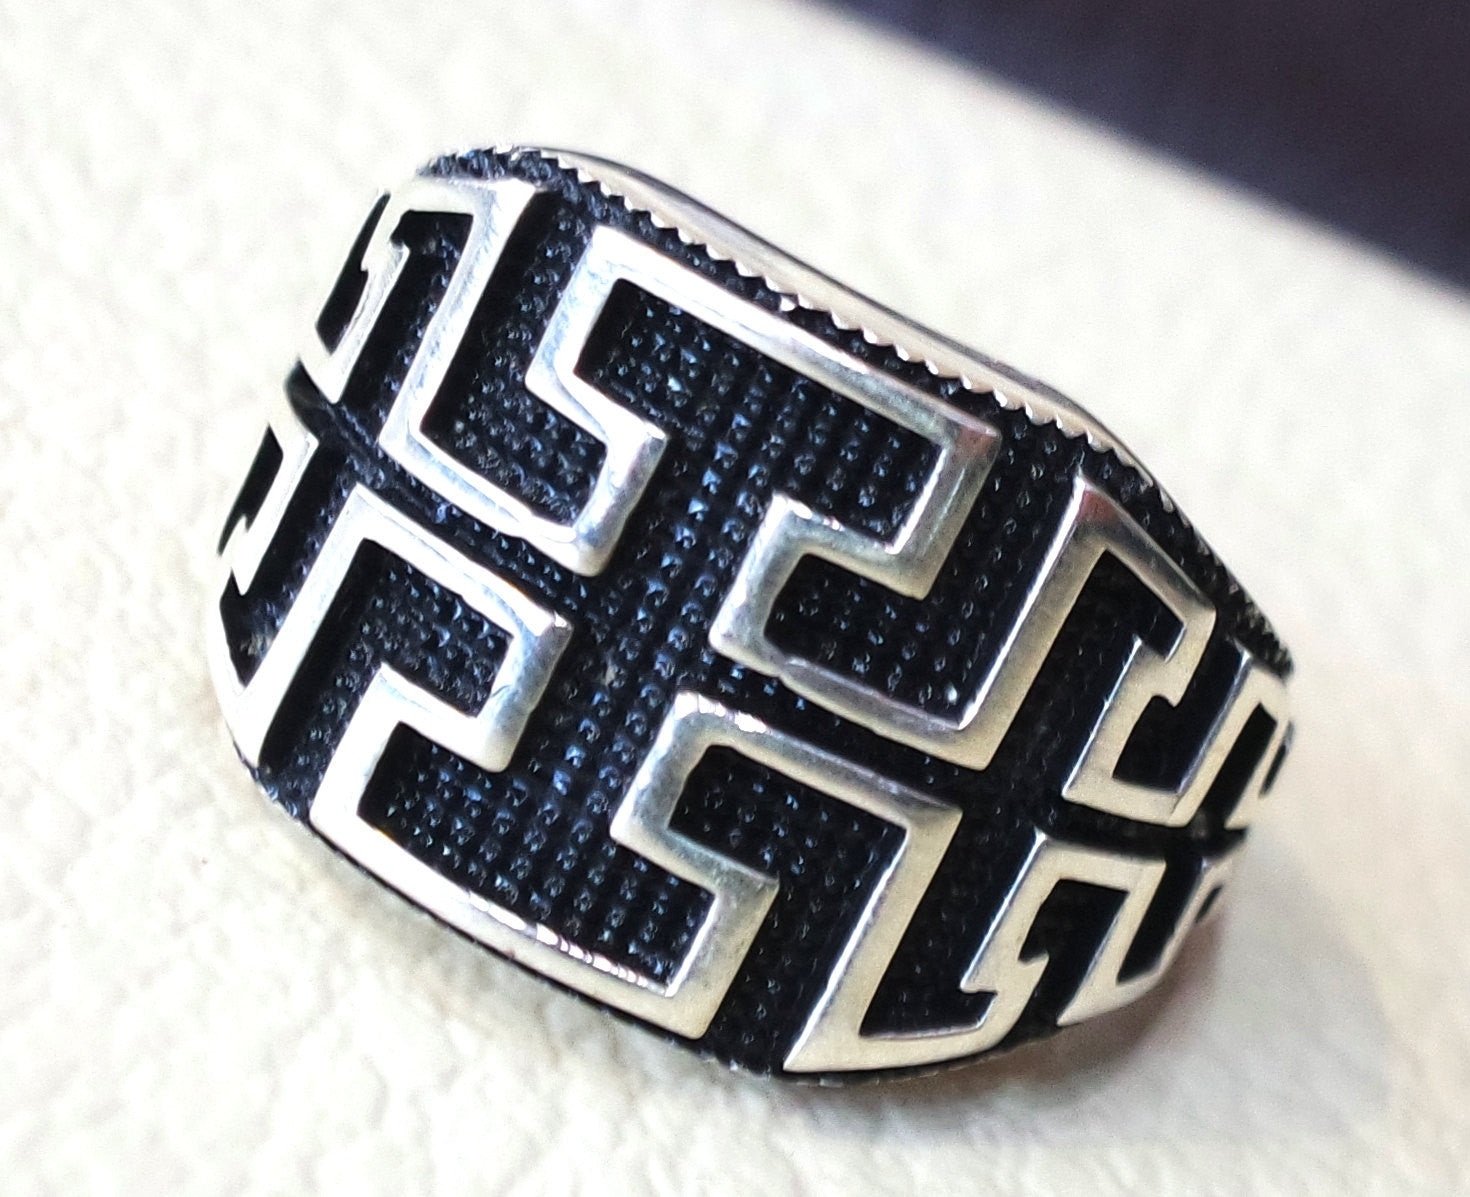 celtic knot sterling silver 925 heavy man ring rectangular shape any size antique style high quality jewelry